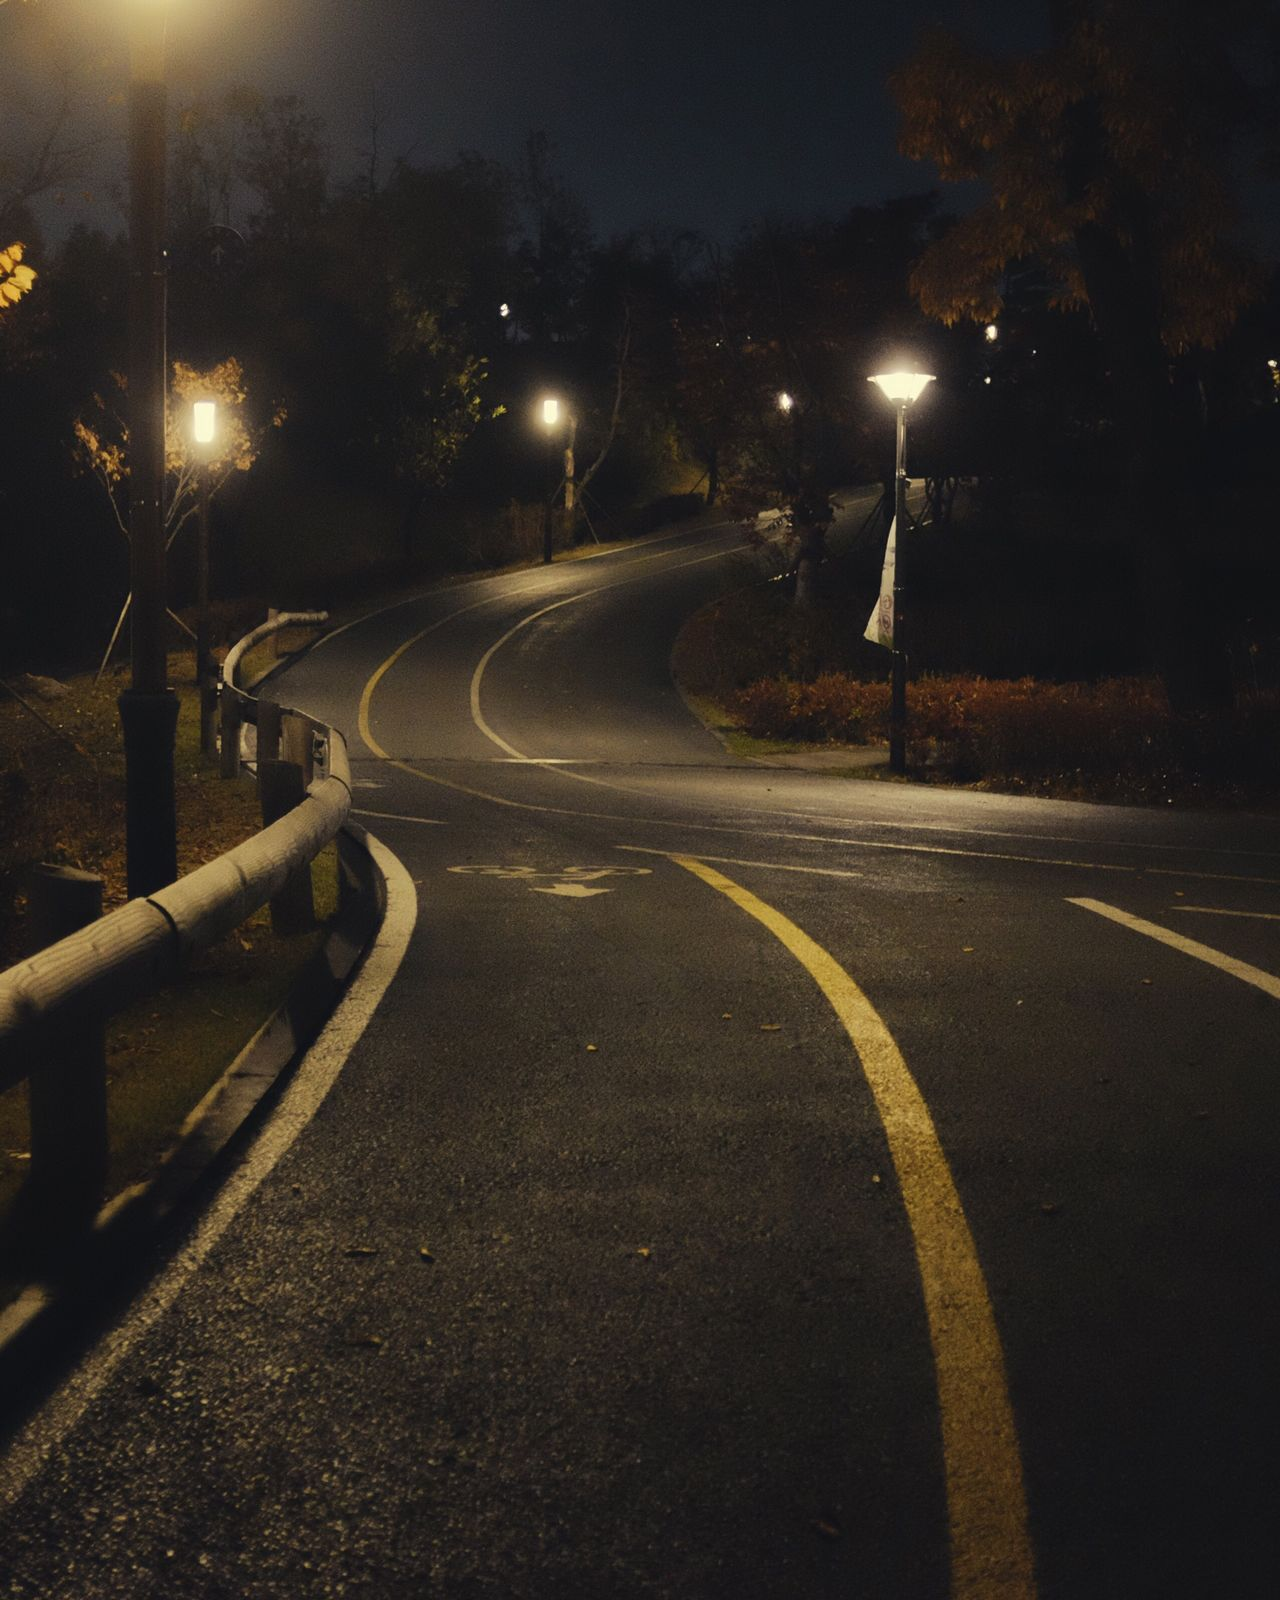 Night Illuminated Street Light Road Transportation No People The Way Forward Outdoors Fujifilm Fuji Fujifilm_xseries X100S FujiX100S Fujifilmx100s Korea Fall NightRoad Autumn Autumn Colors My Year My View Capture Berlin TakeoverMusic Waiting Game Road Korea Photos